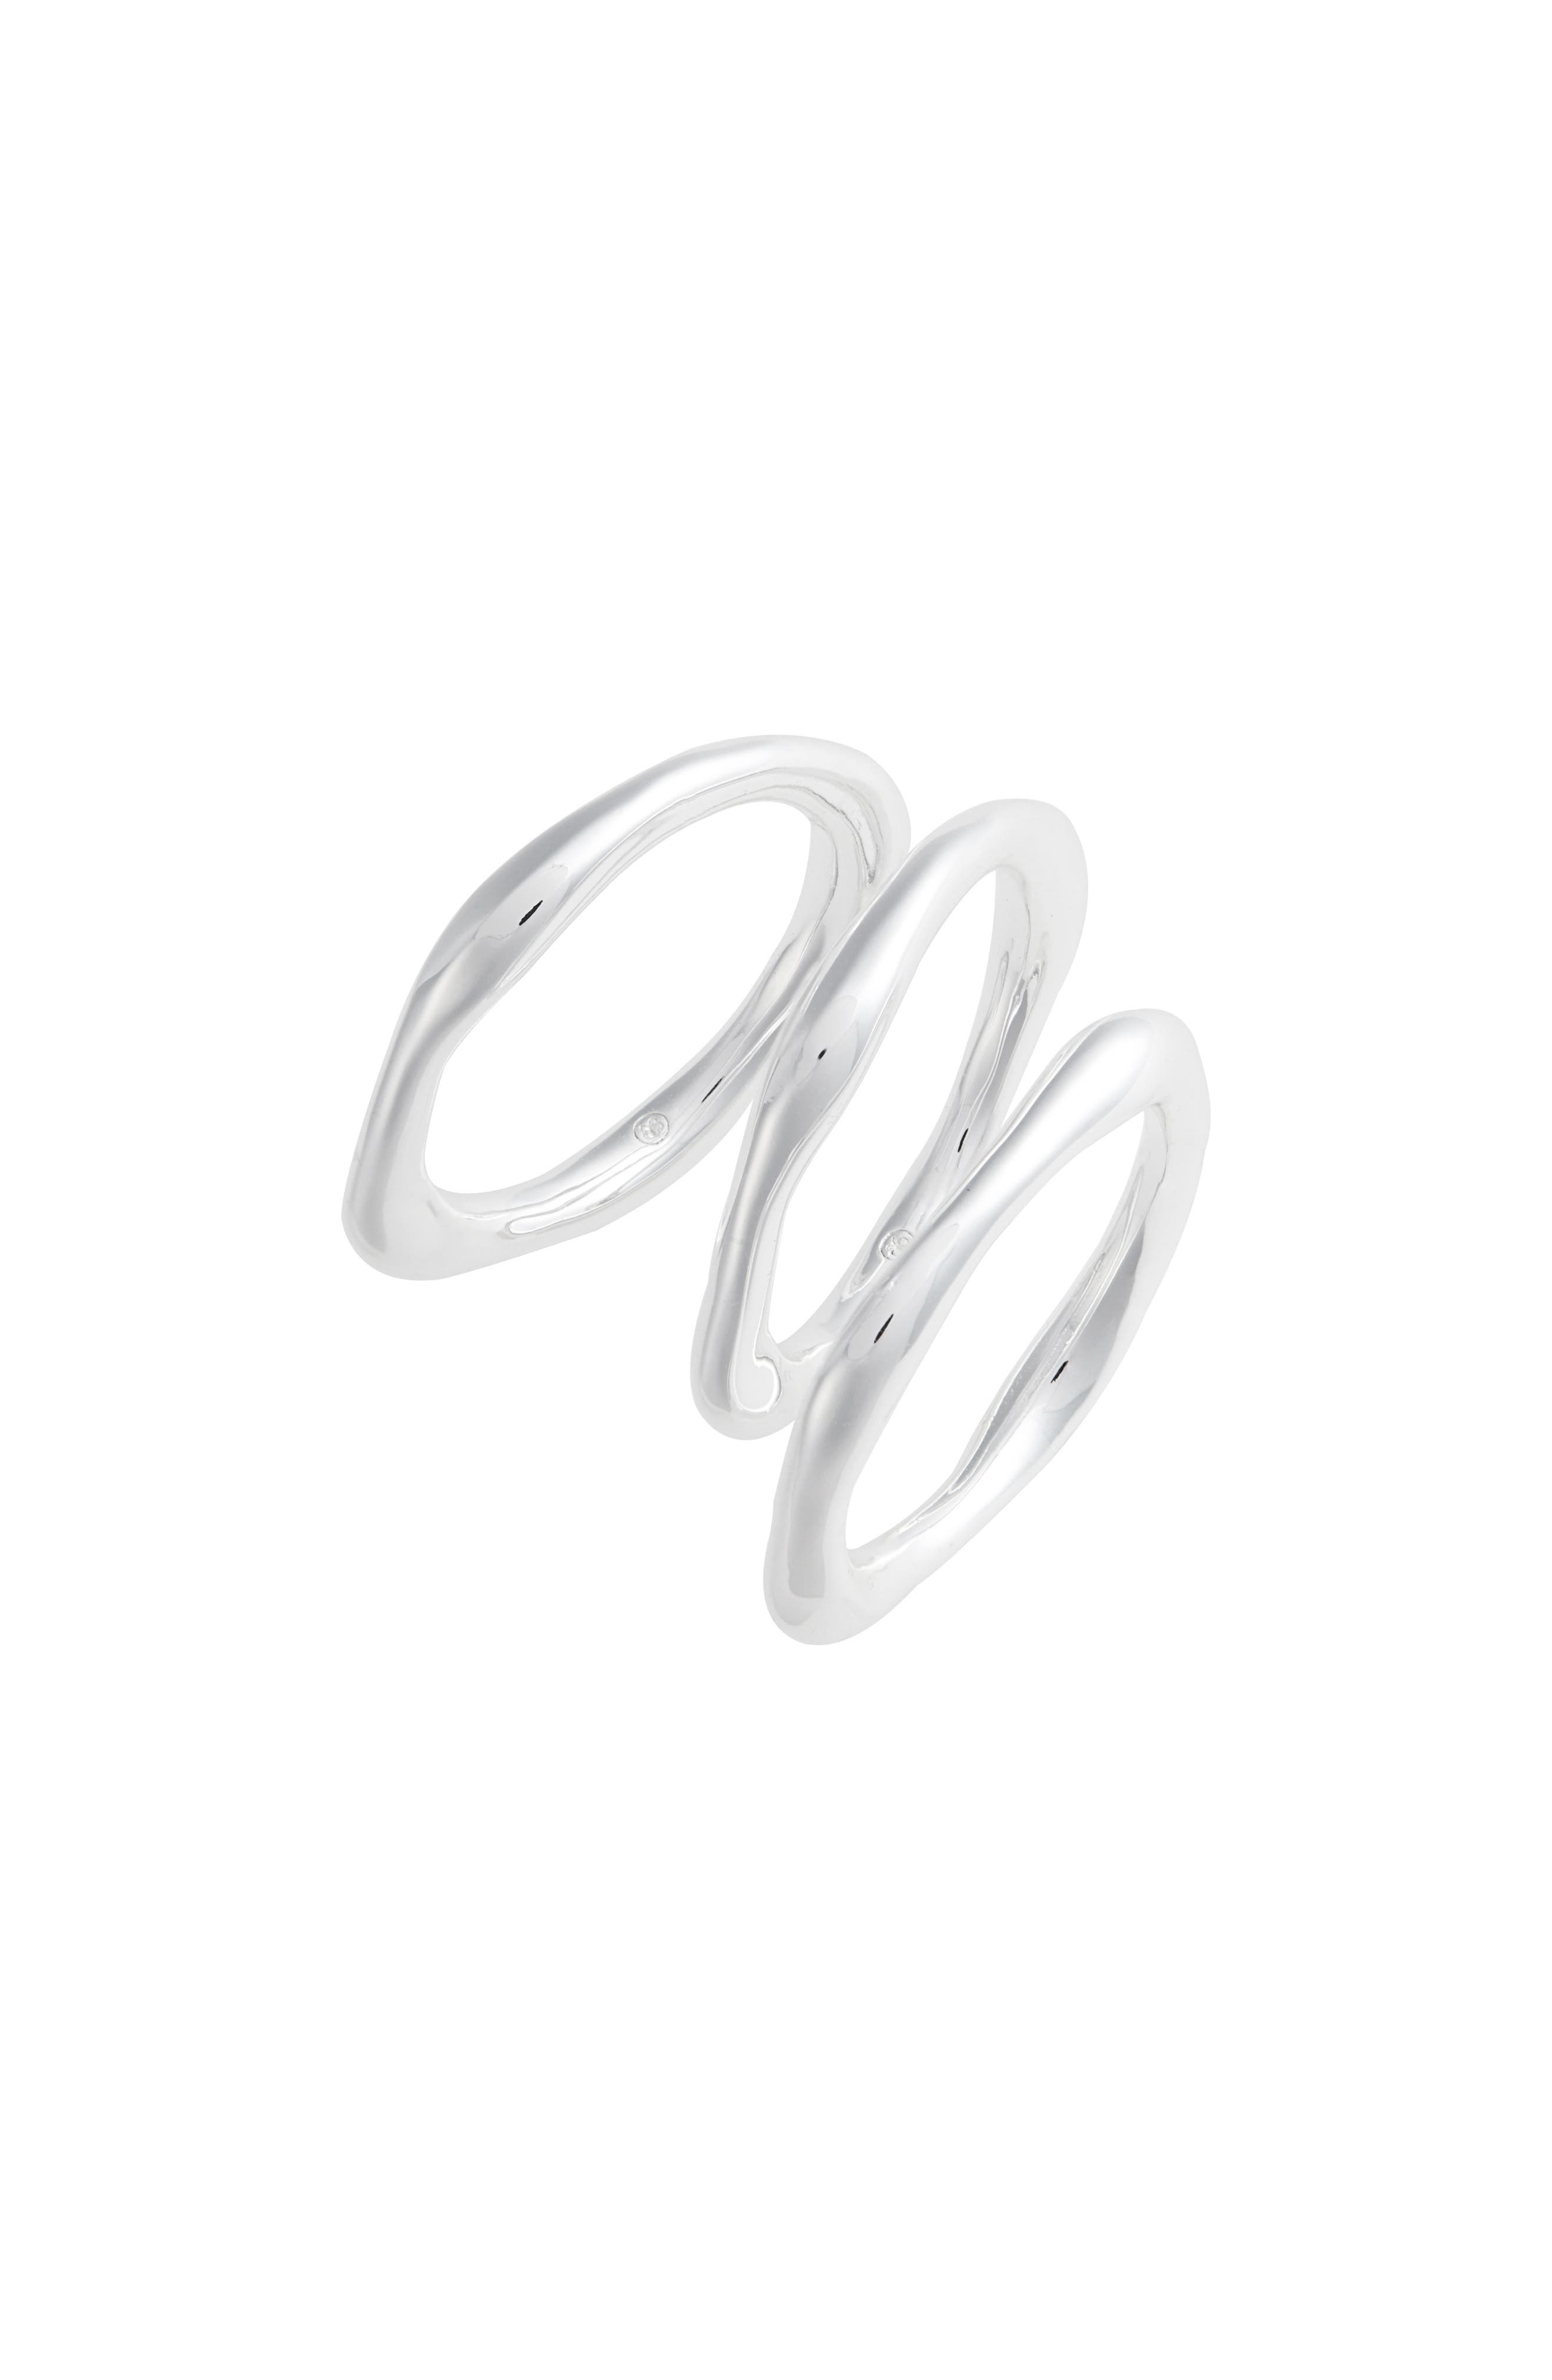 Quinn Set of 3 Rings,                         Main,                         color, SILVER